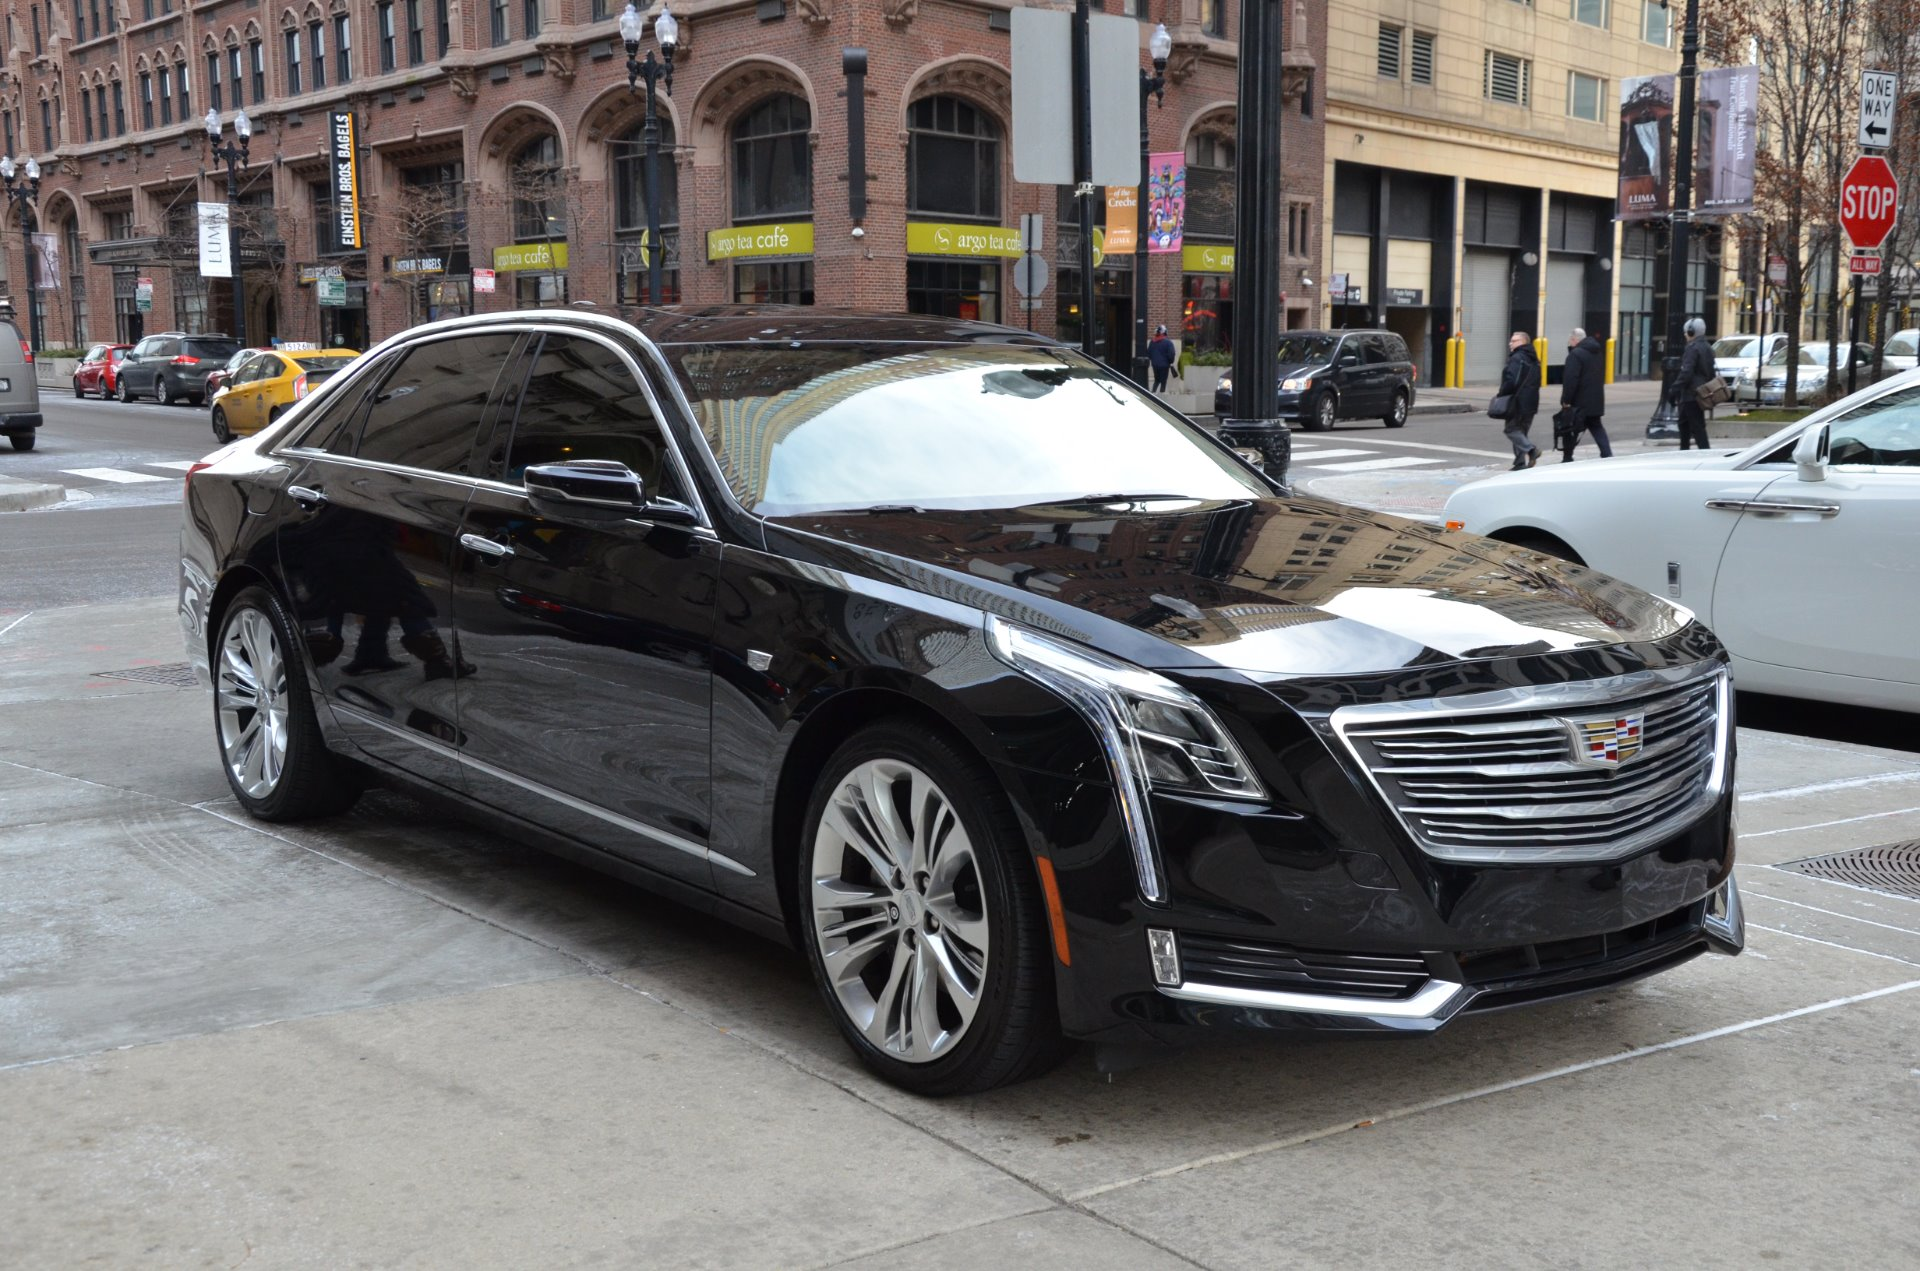 2016 cadillac ct6 3 0tt platinum stock r311ab for sale near chicago il il cadillac dealer. Black Bedroom Furniture Sets. Home Design Ideas